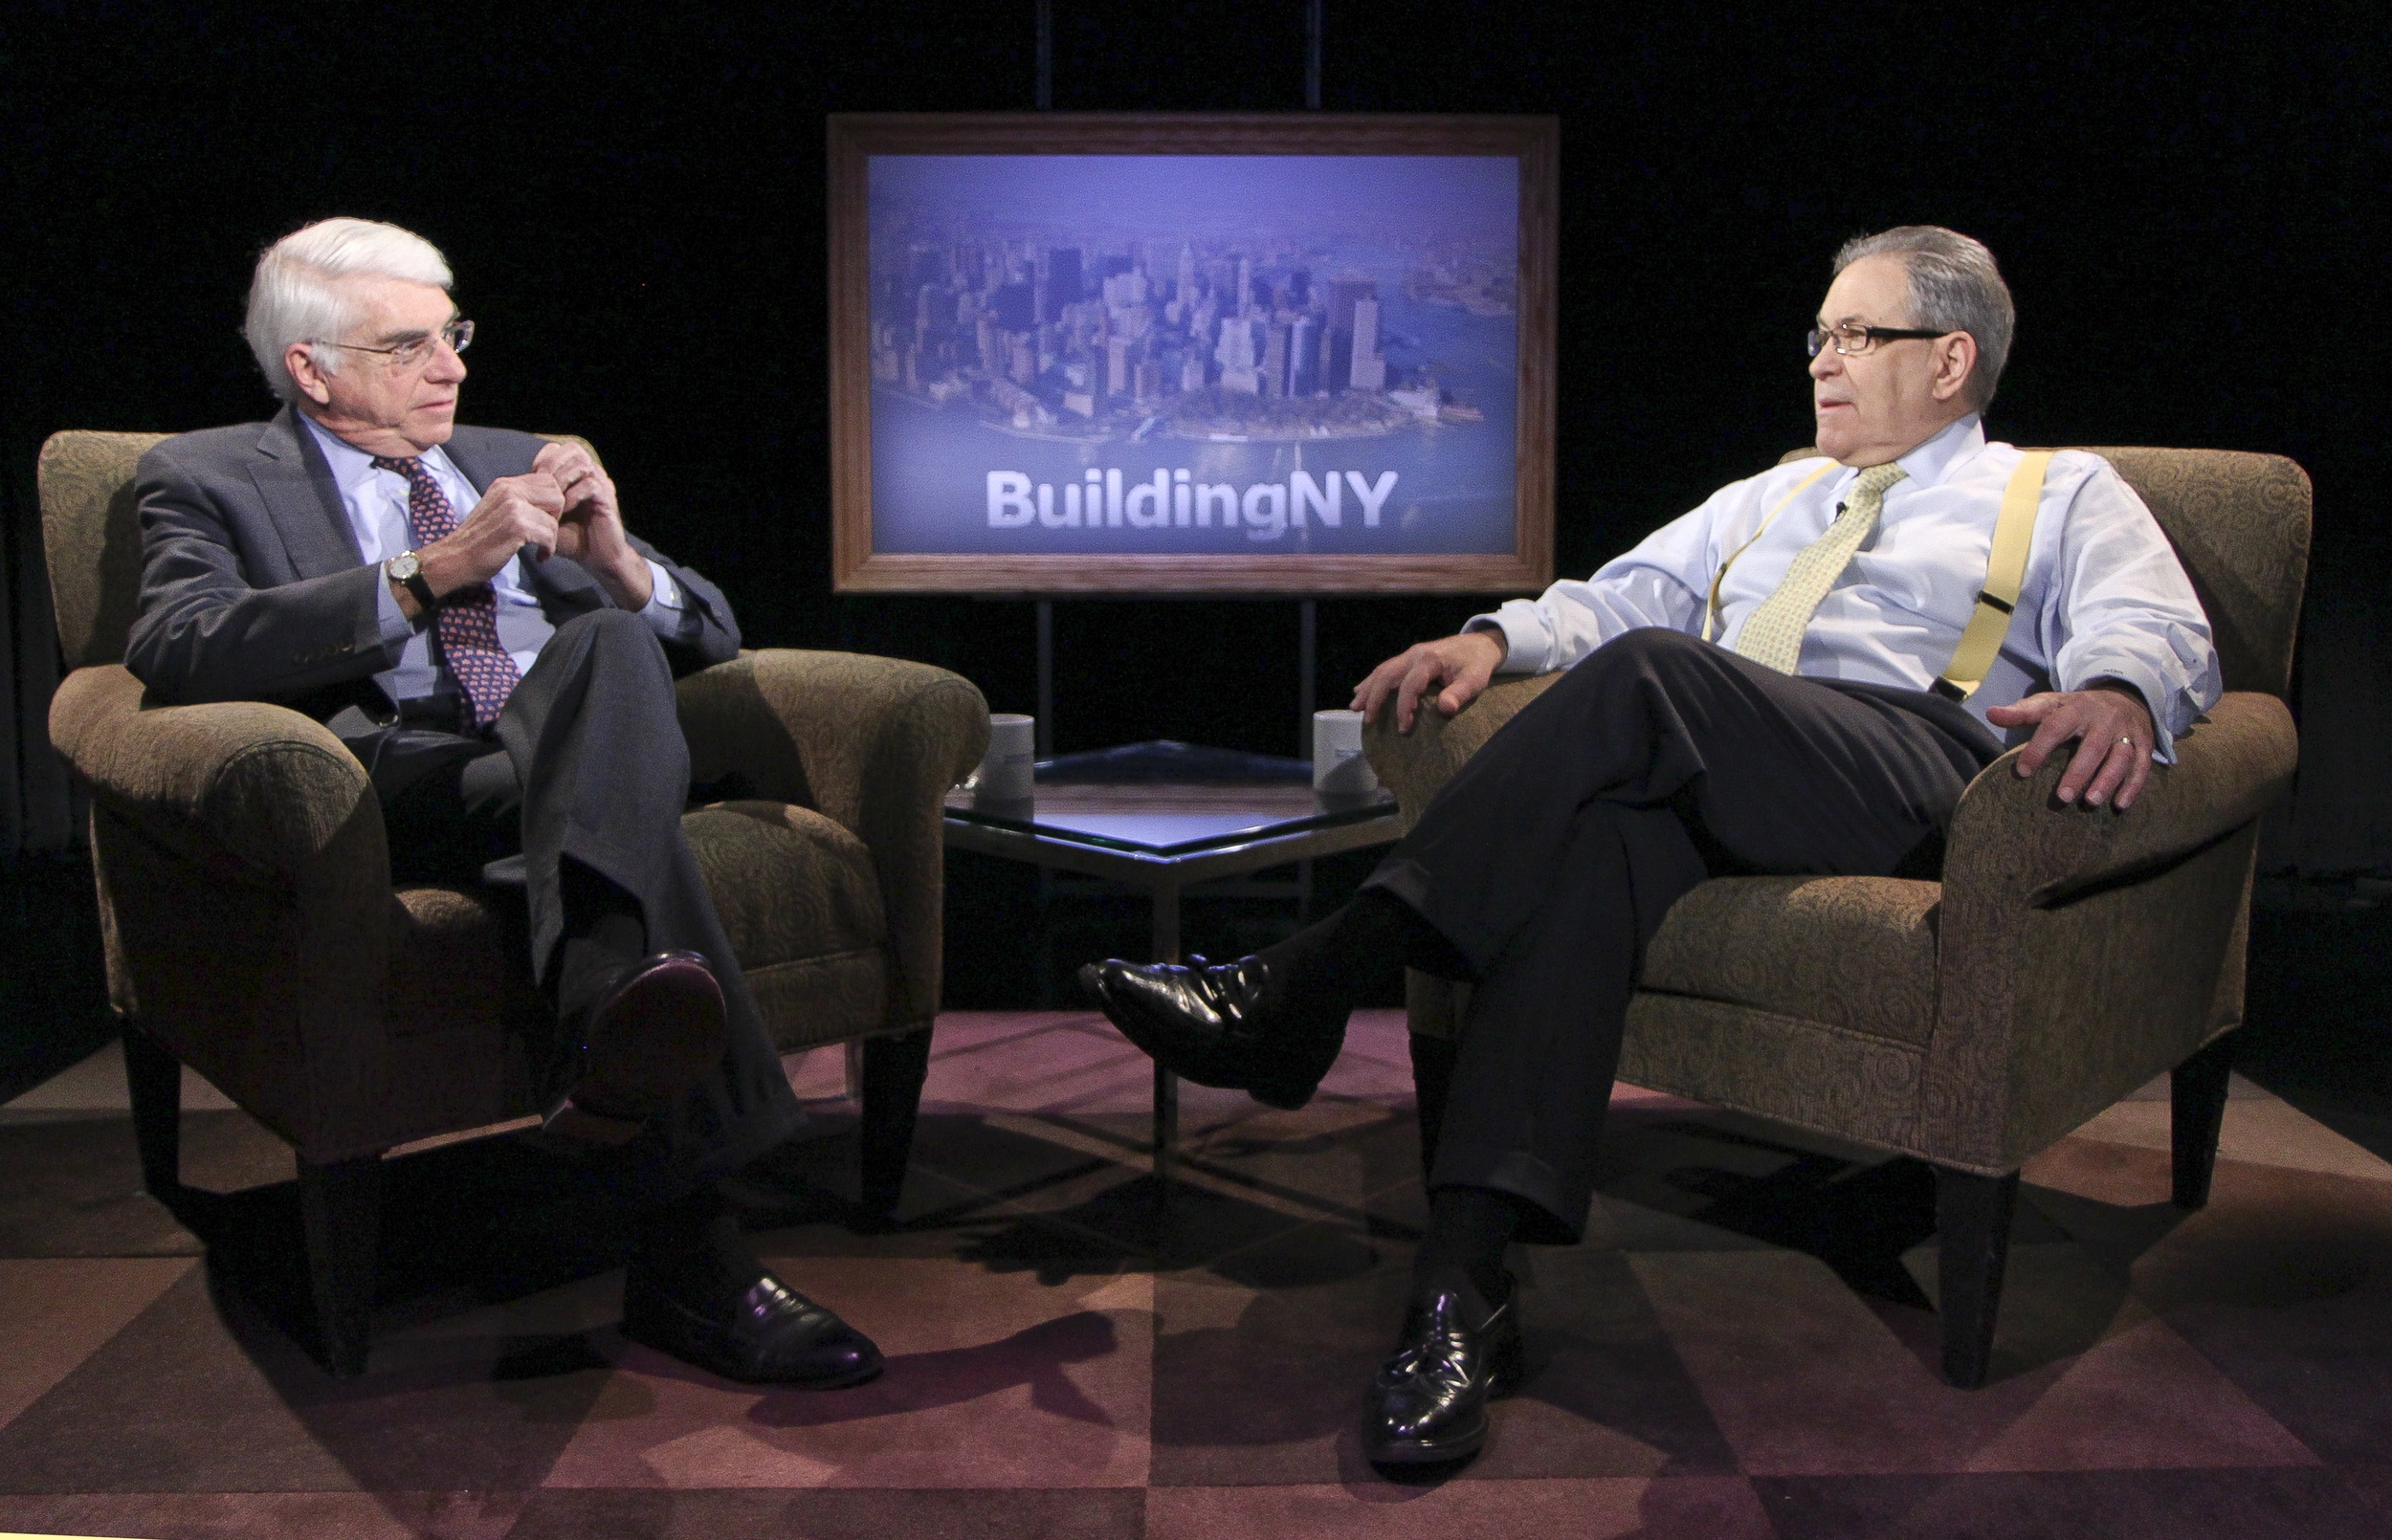 alan fishman, building ny photo.JPG